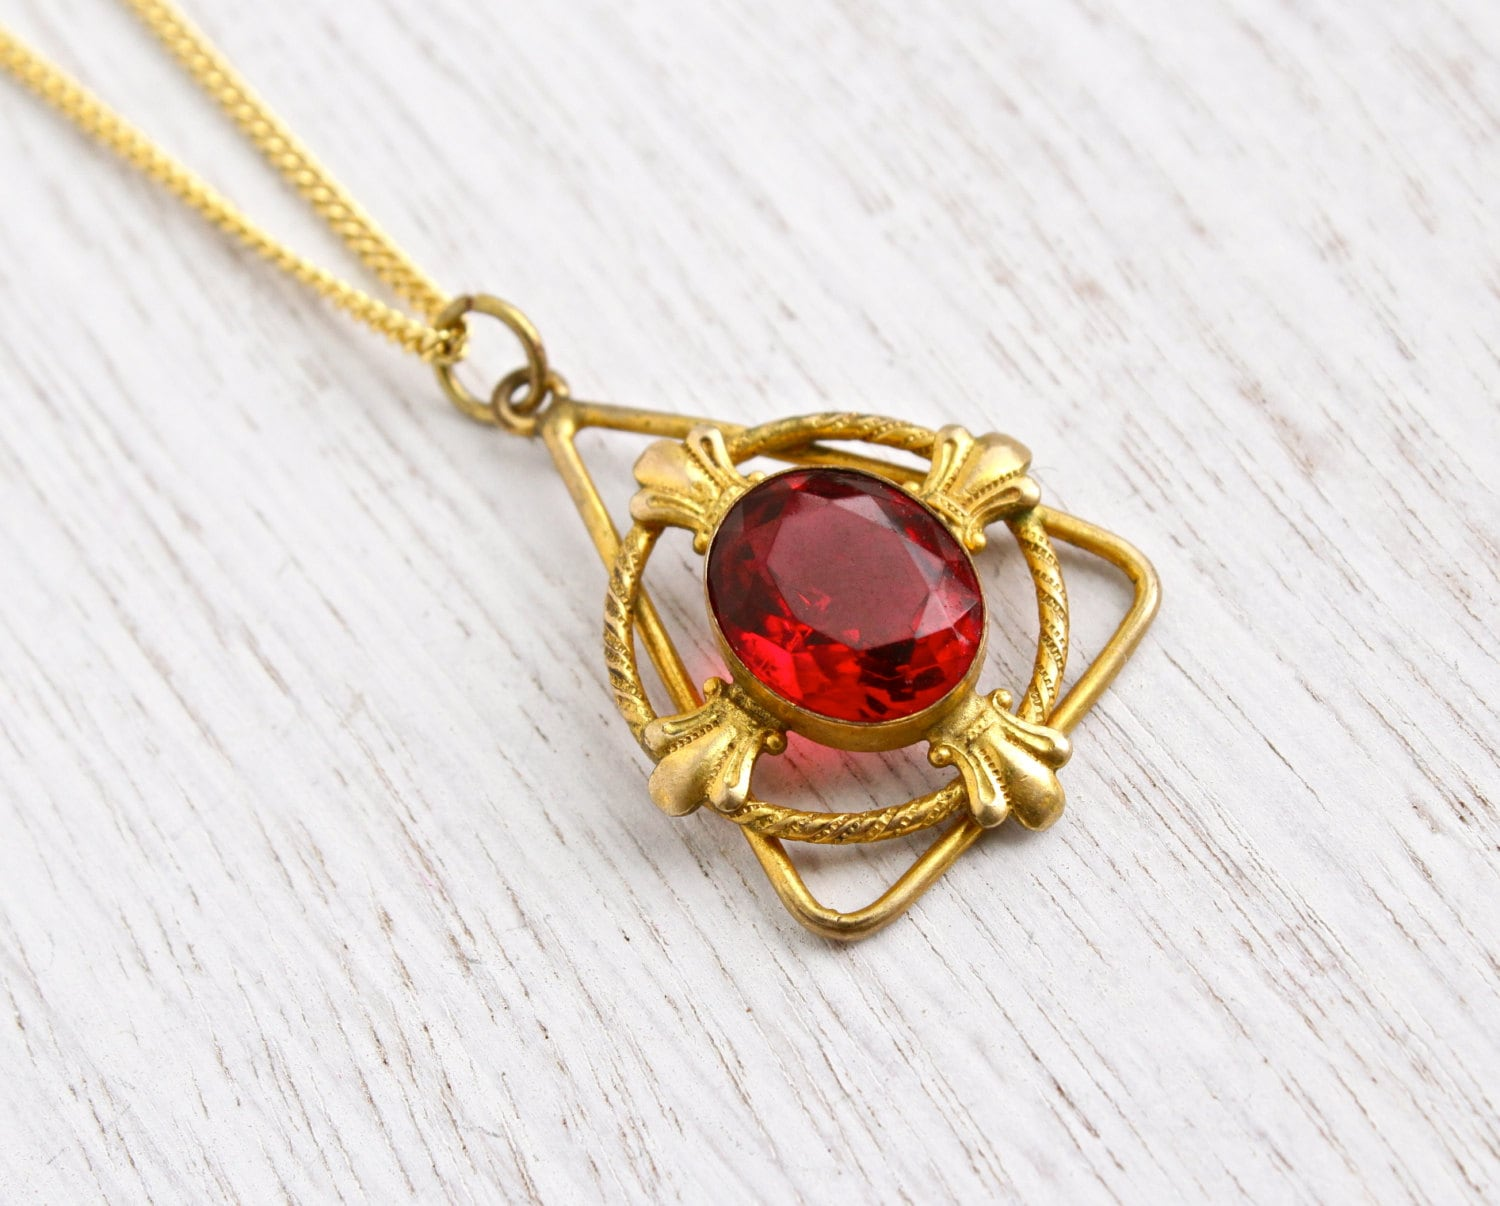 SALE Antique Ruby Red Stone Necklace Edwardian 1900s Gold